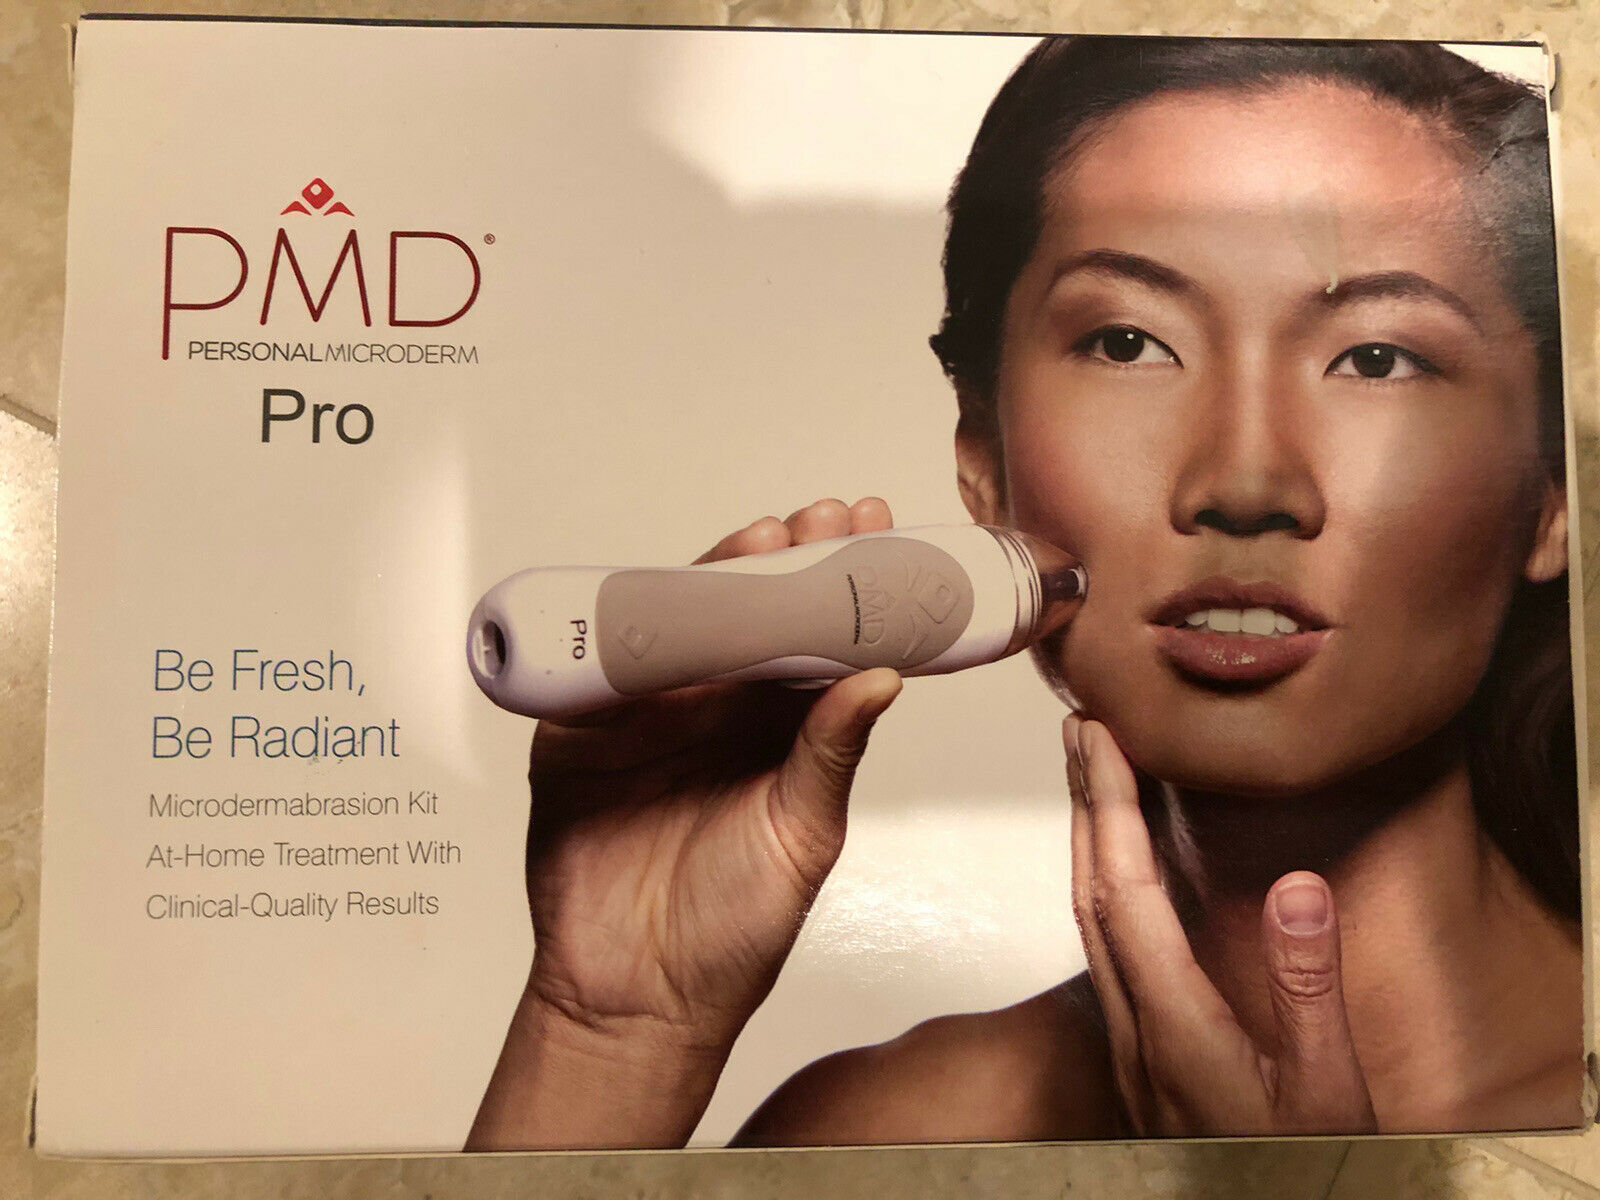 PMD Personal Microderm Pro Complete Skin Care System With 12 Tips 1